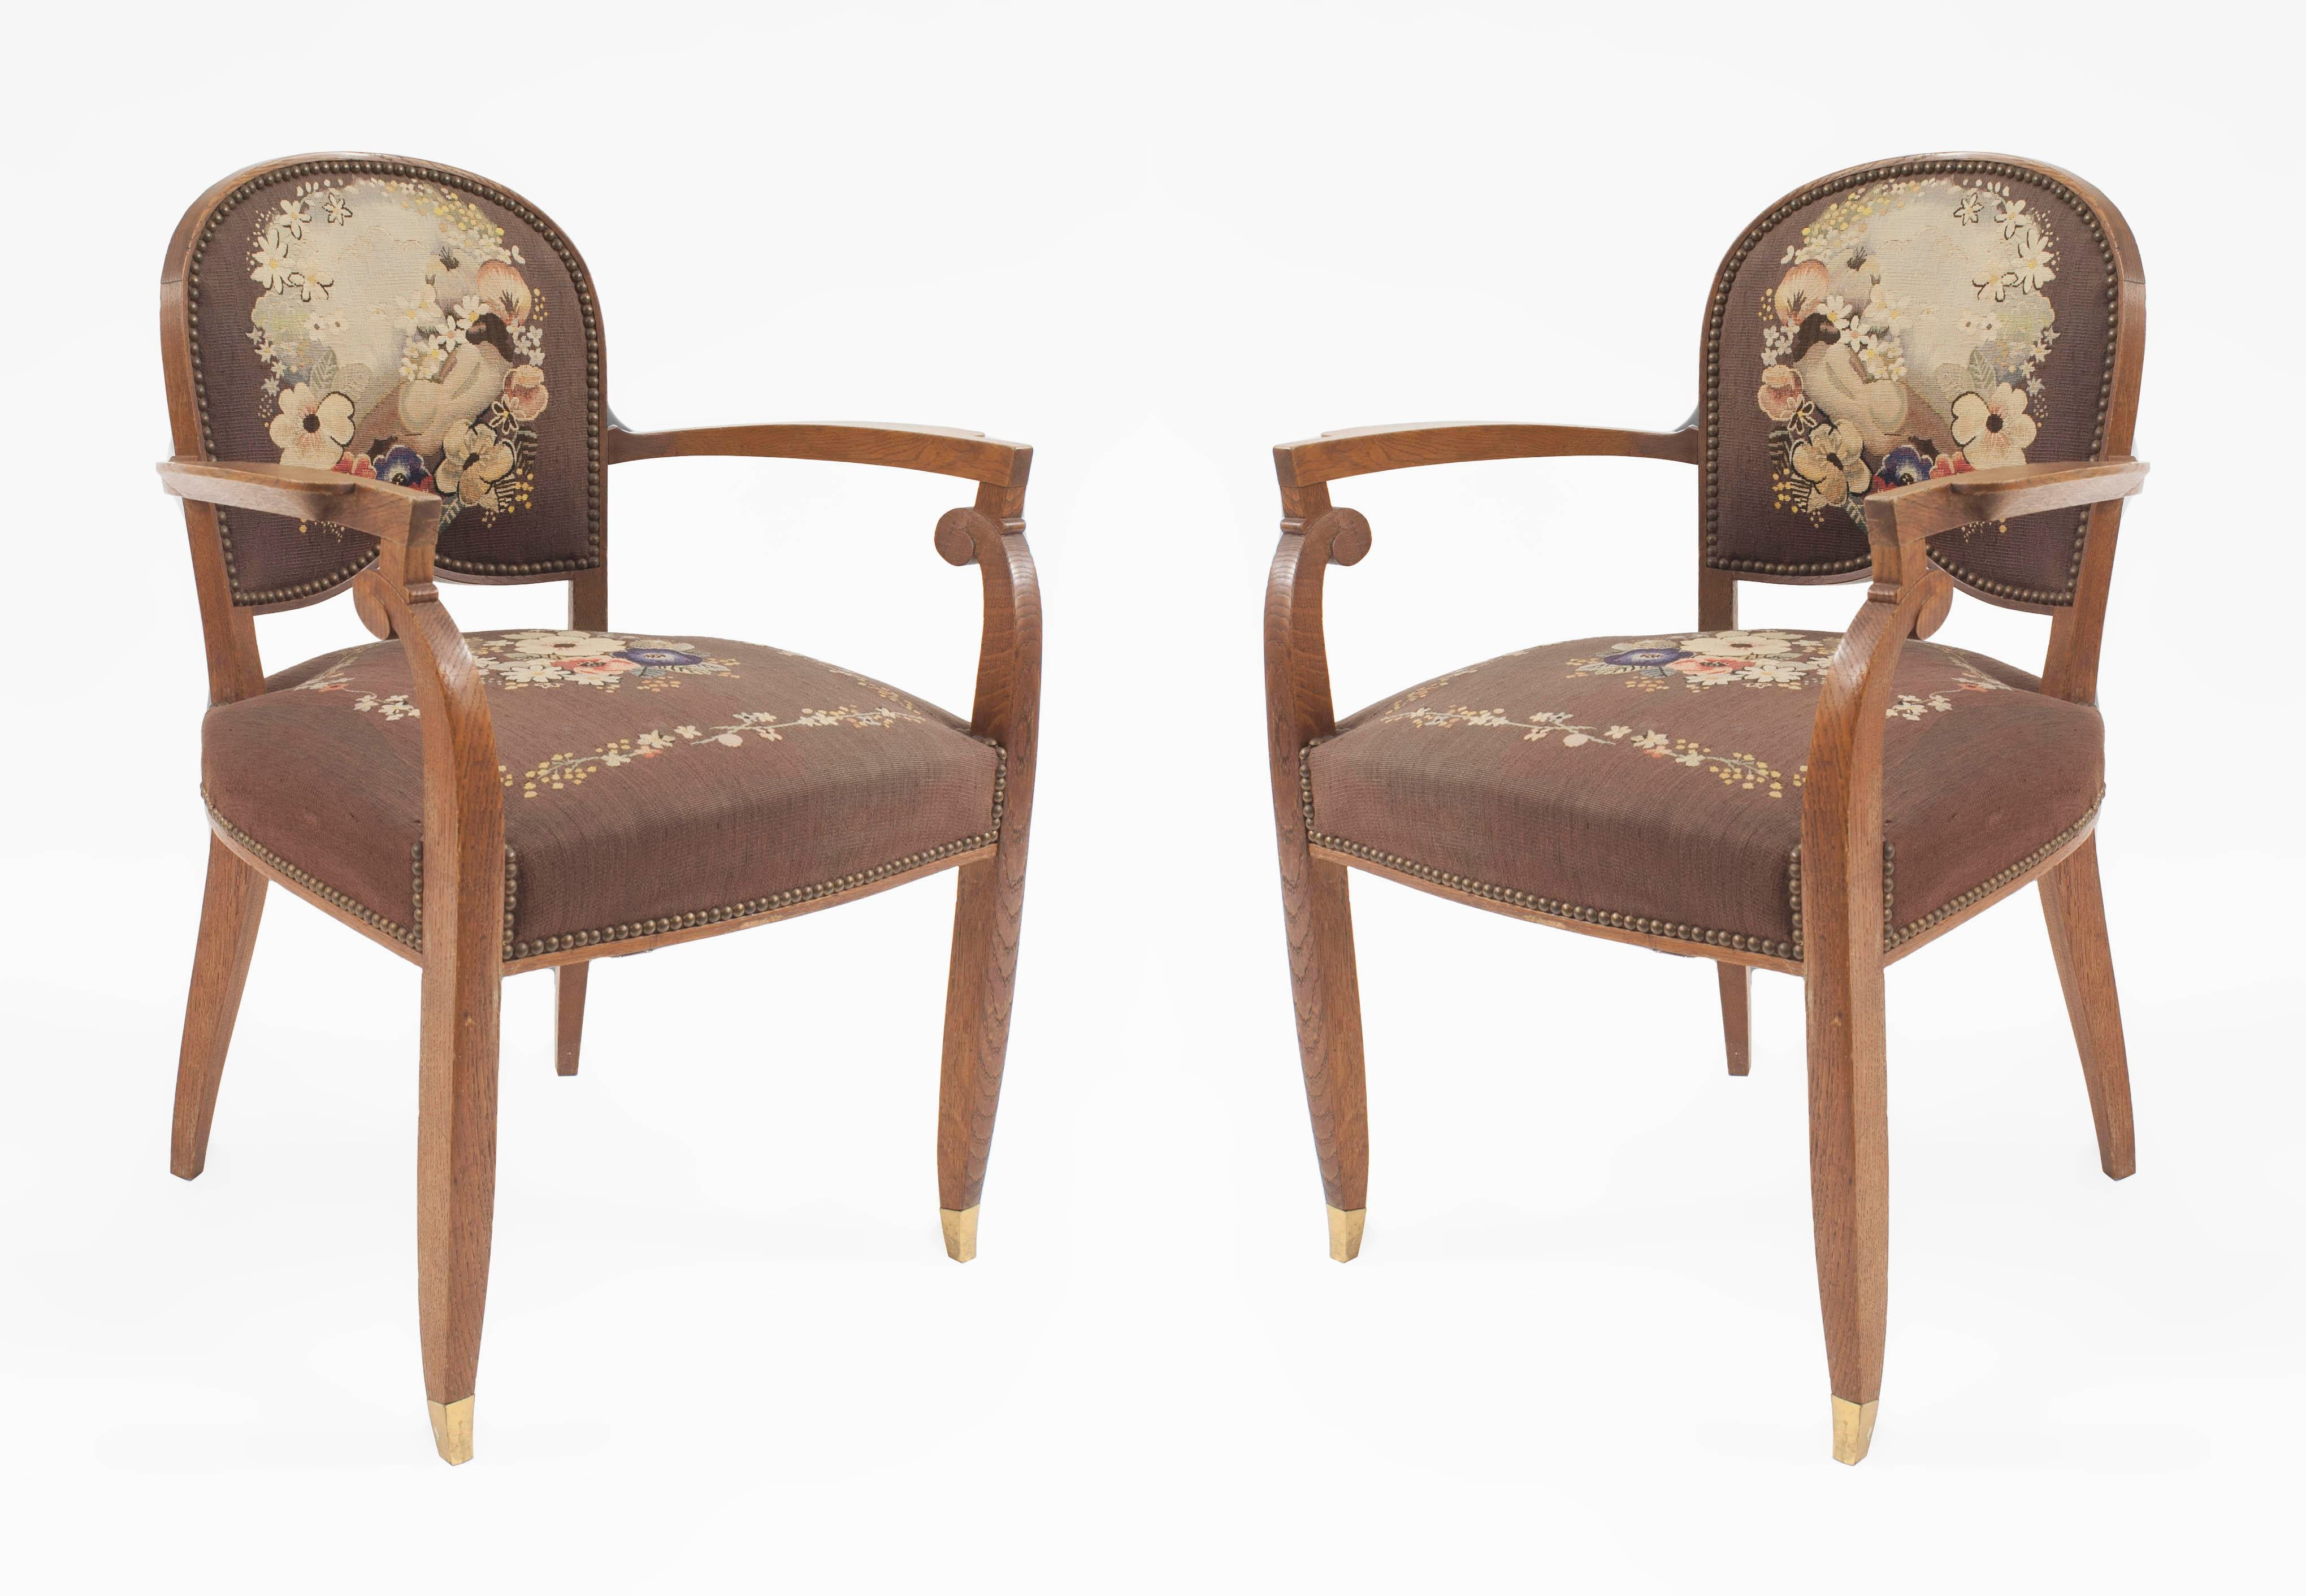 Pair Of French Art Deco Arm Chair   Image 6 Of 6